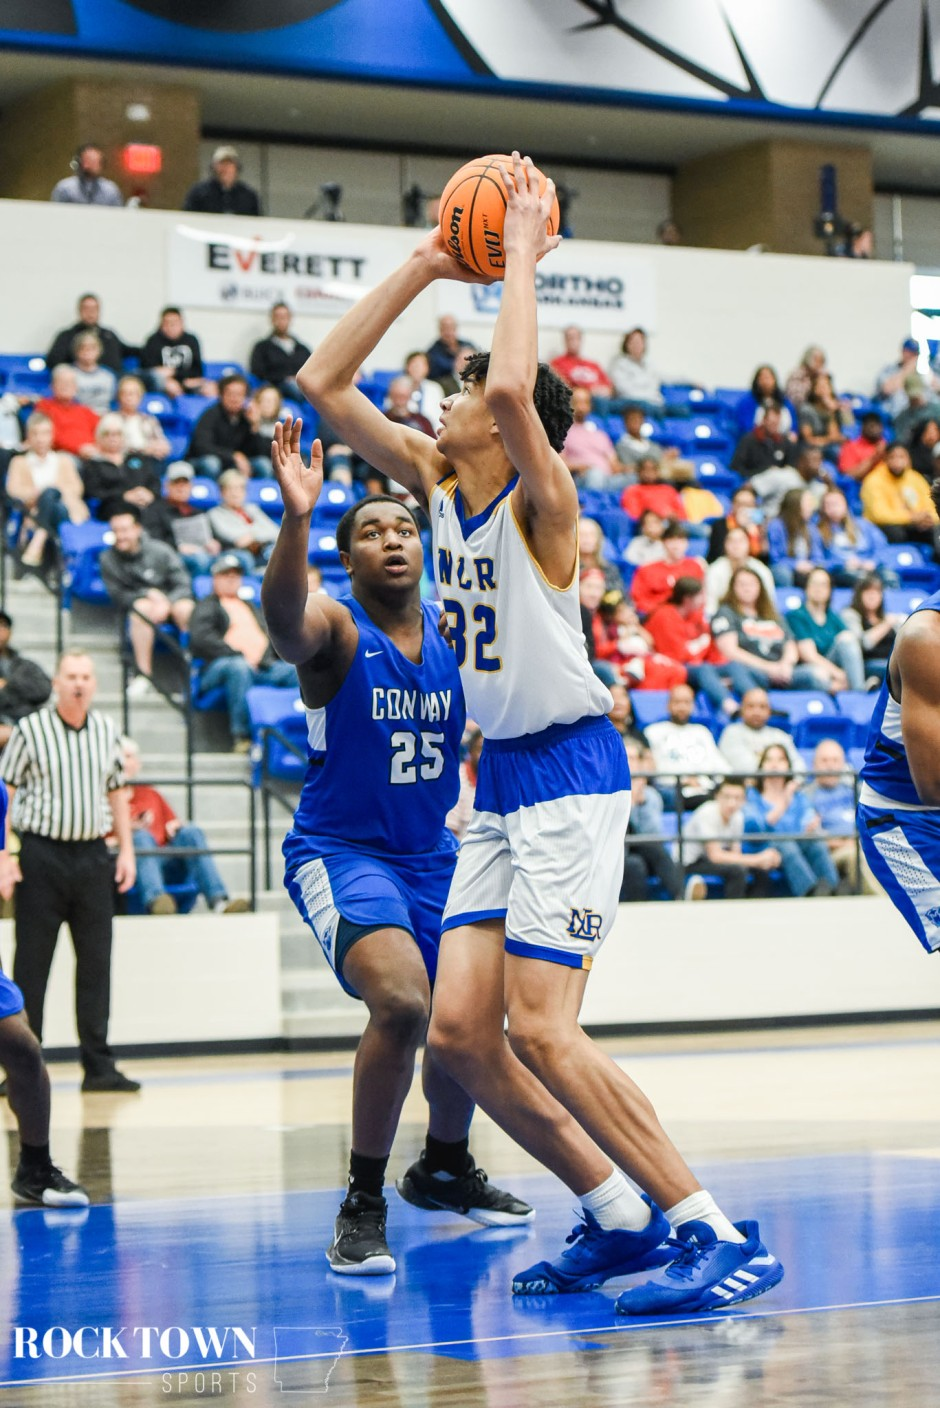 NLR_conway_bball_2020(i)-18